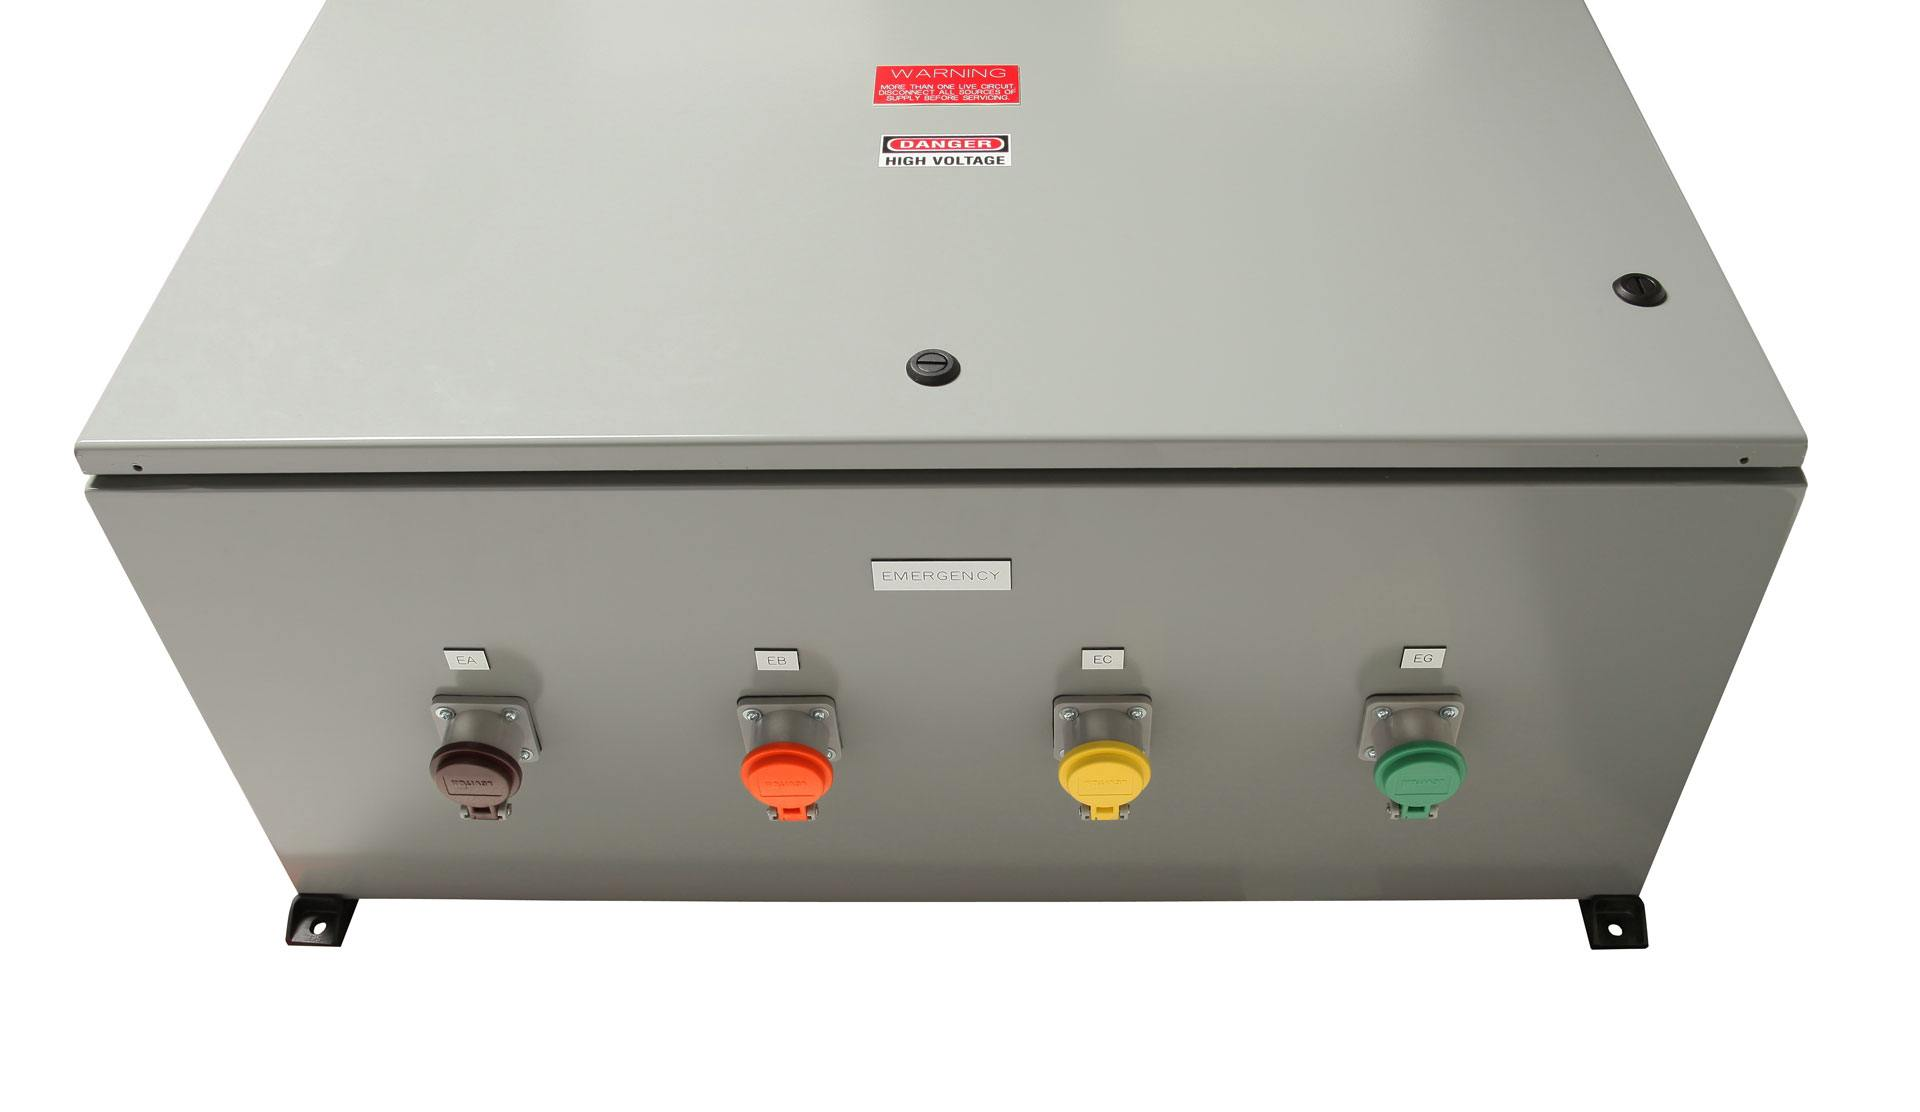 Company Switch Breaker Cam Lok Outlet Tap Box Psi Control Solutions Add Tandem Breakers To Expand The Available Circuits In Your Fuse Price 130700 499000